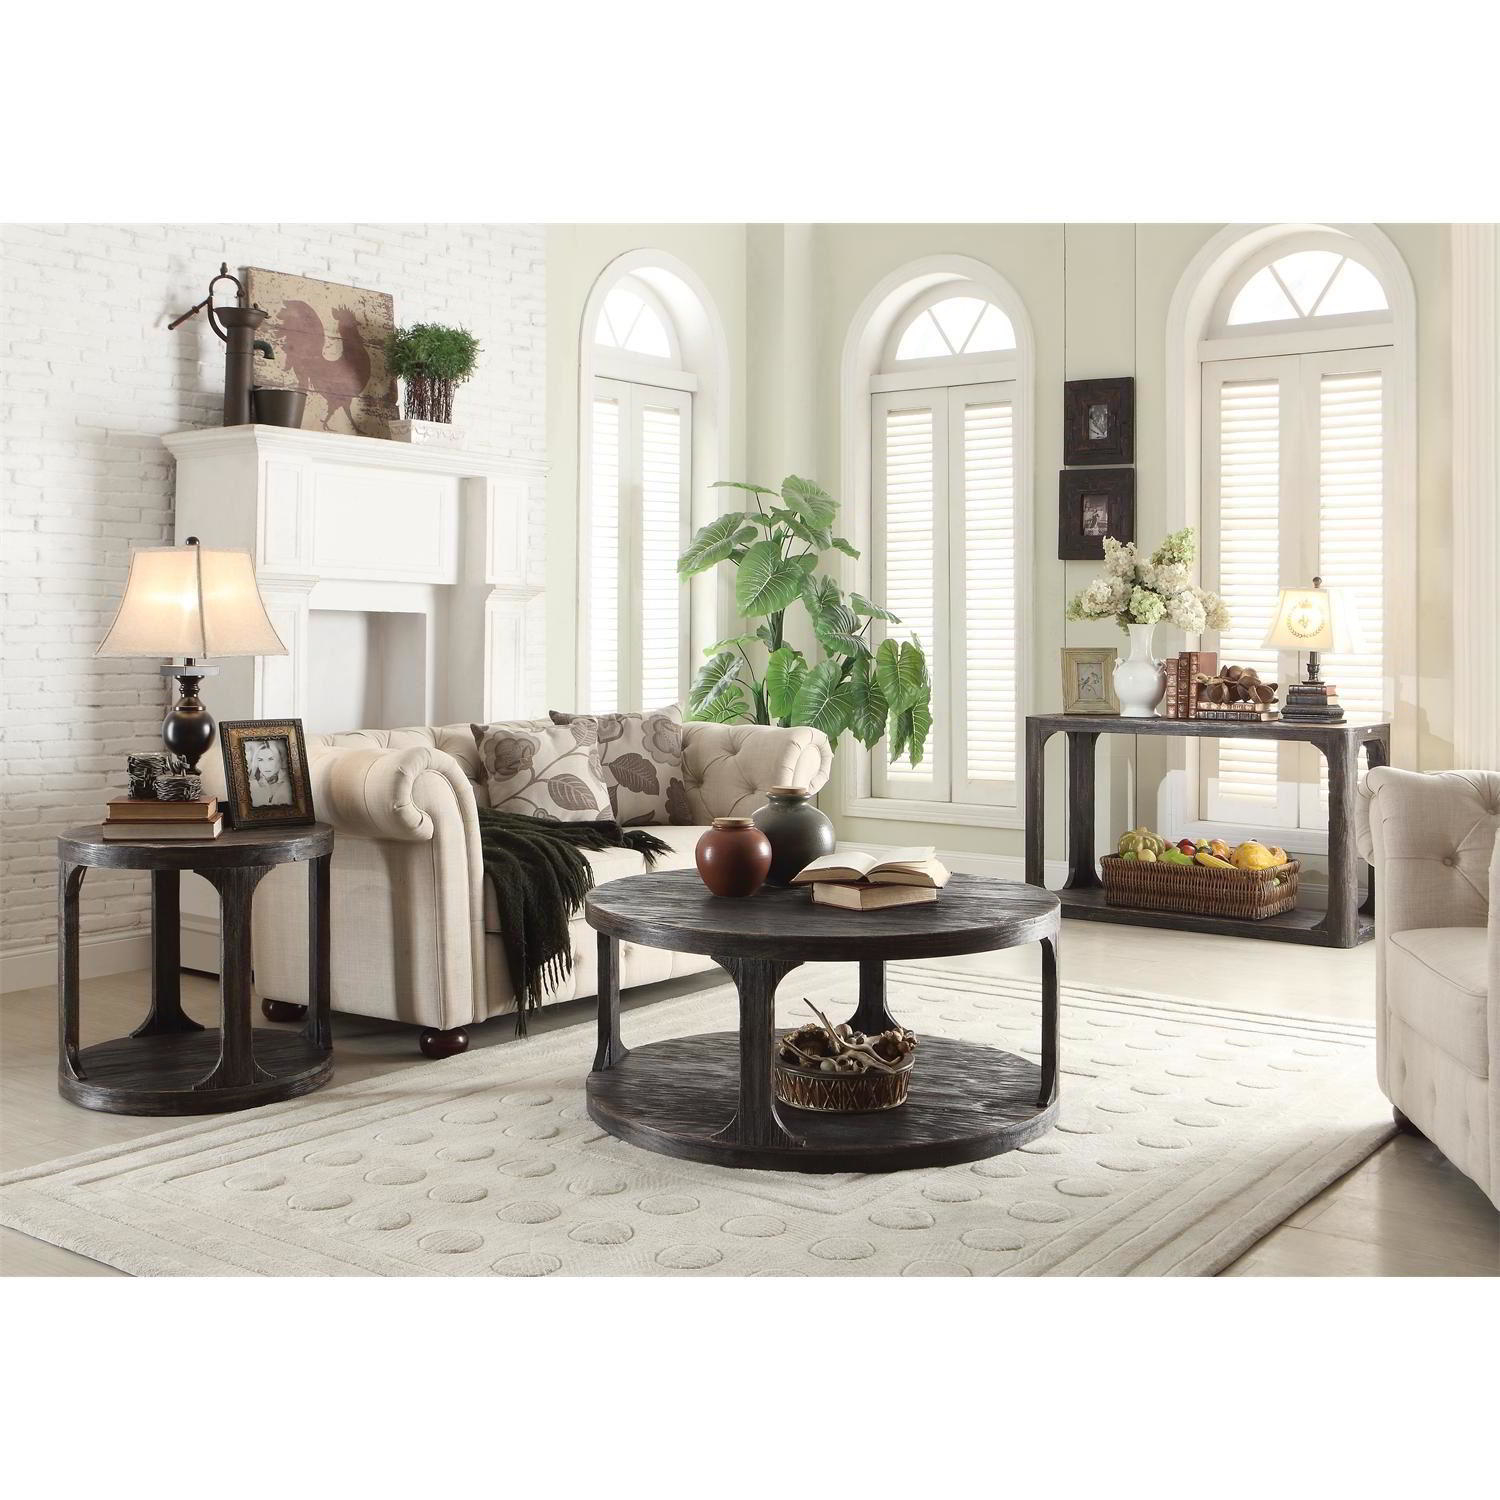 Creative Front Room Furnishings For Living Room Ideas With Front Room Furnishings Outlet